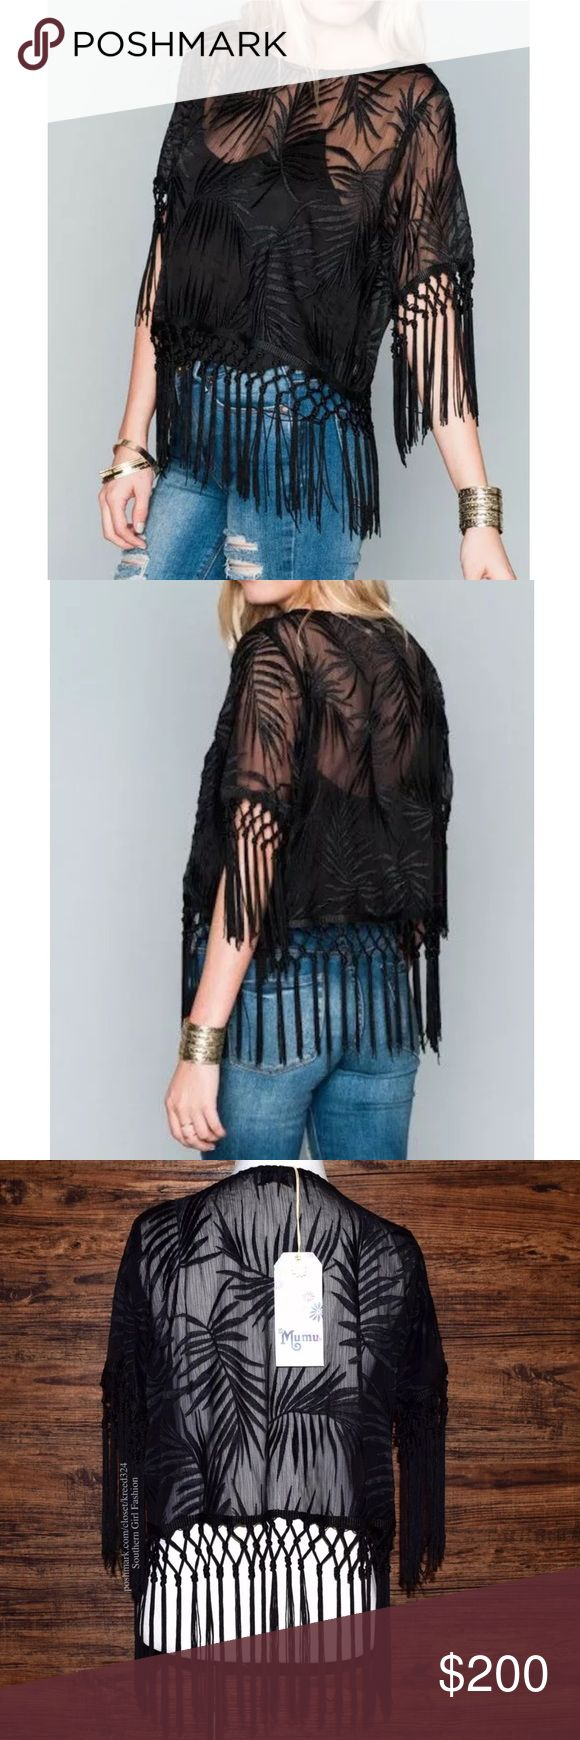 SHOW ME YOUR MUMU Top Classic Patterned Bohemian Available Sizes: Small. New With Tags. $128.00 MSRP + Tax.  • Beautiful black embroidered top featuring knotted fringe tassels at sleeves and bottom hem.  • Intricate textured fabric with leaf design throughout. • Unlined silhouette. • Camisole lining on model not included. • Polyester. • Made in the USA.   {Southern Girl Fashion - Closet Policy}  ✔️ Same-Business-Day Shipping (10am CT) ✔️ Reasonable best offer considered when submitted with…